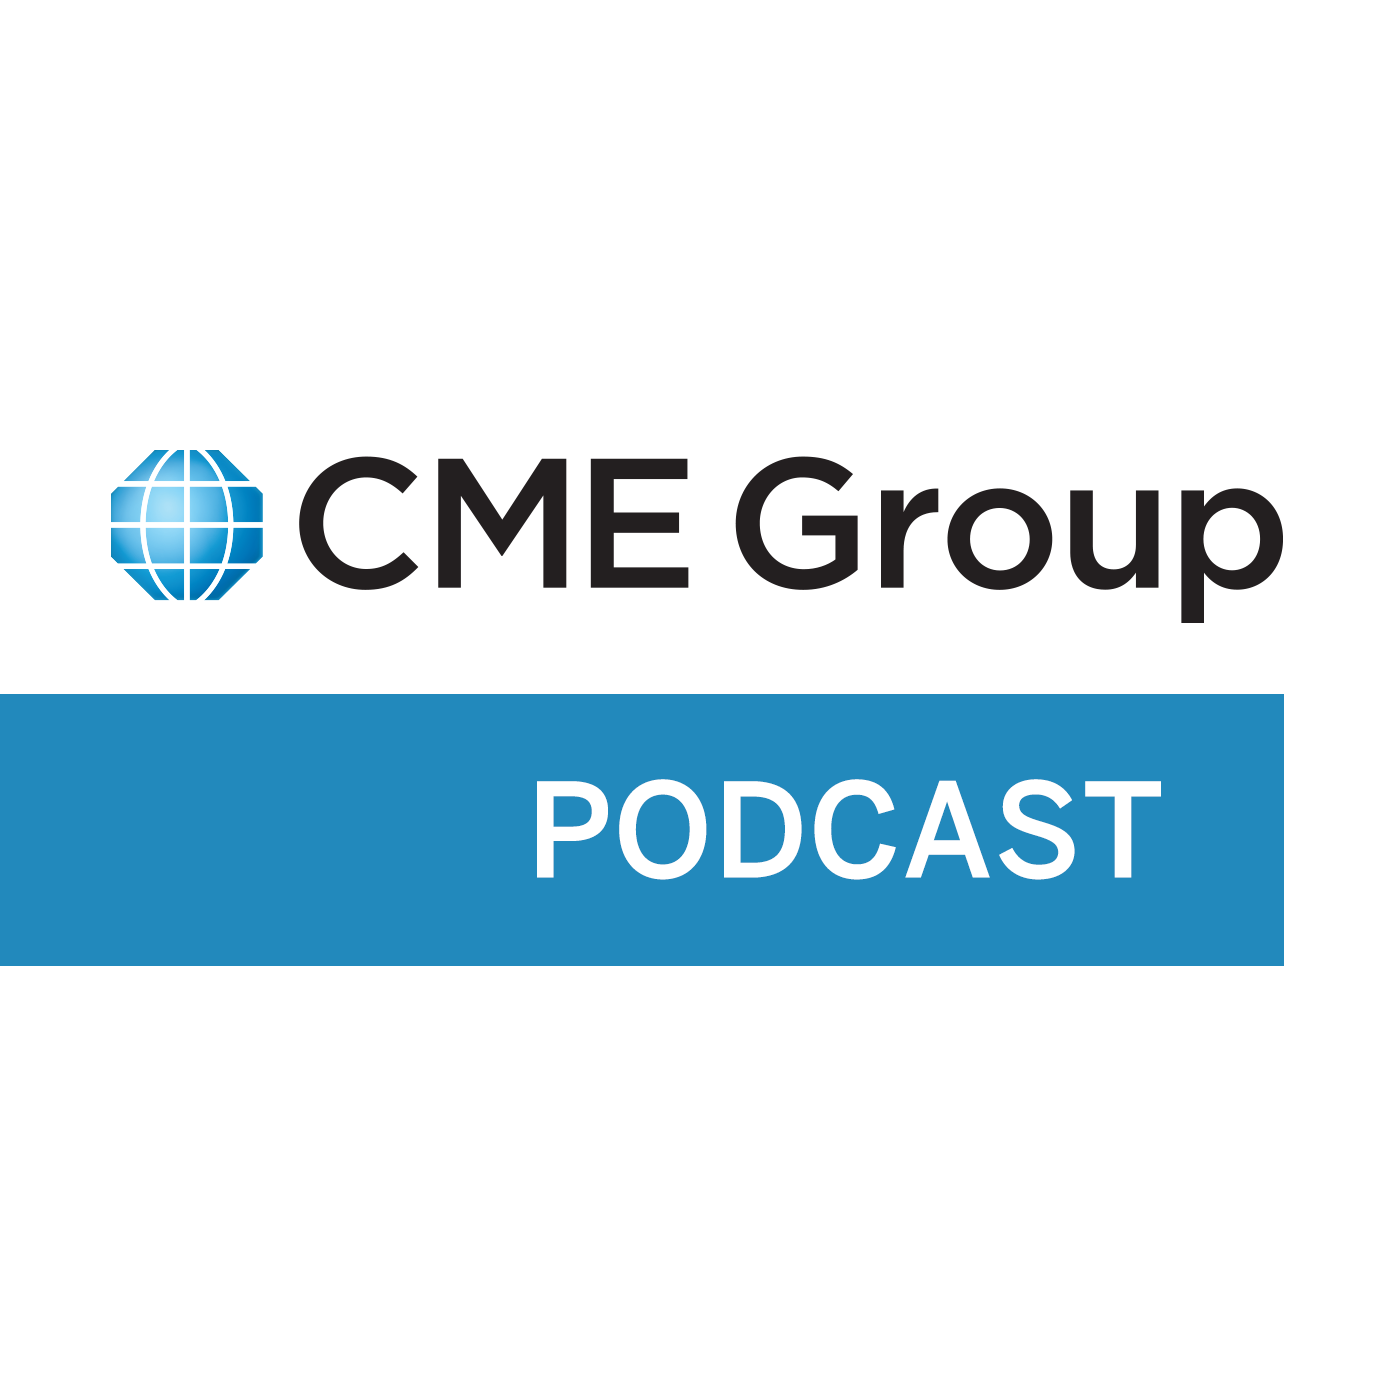 CME Group Podcast show art